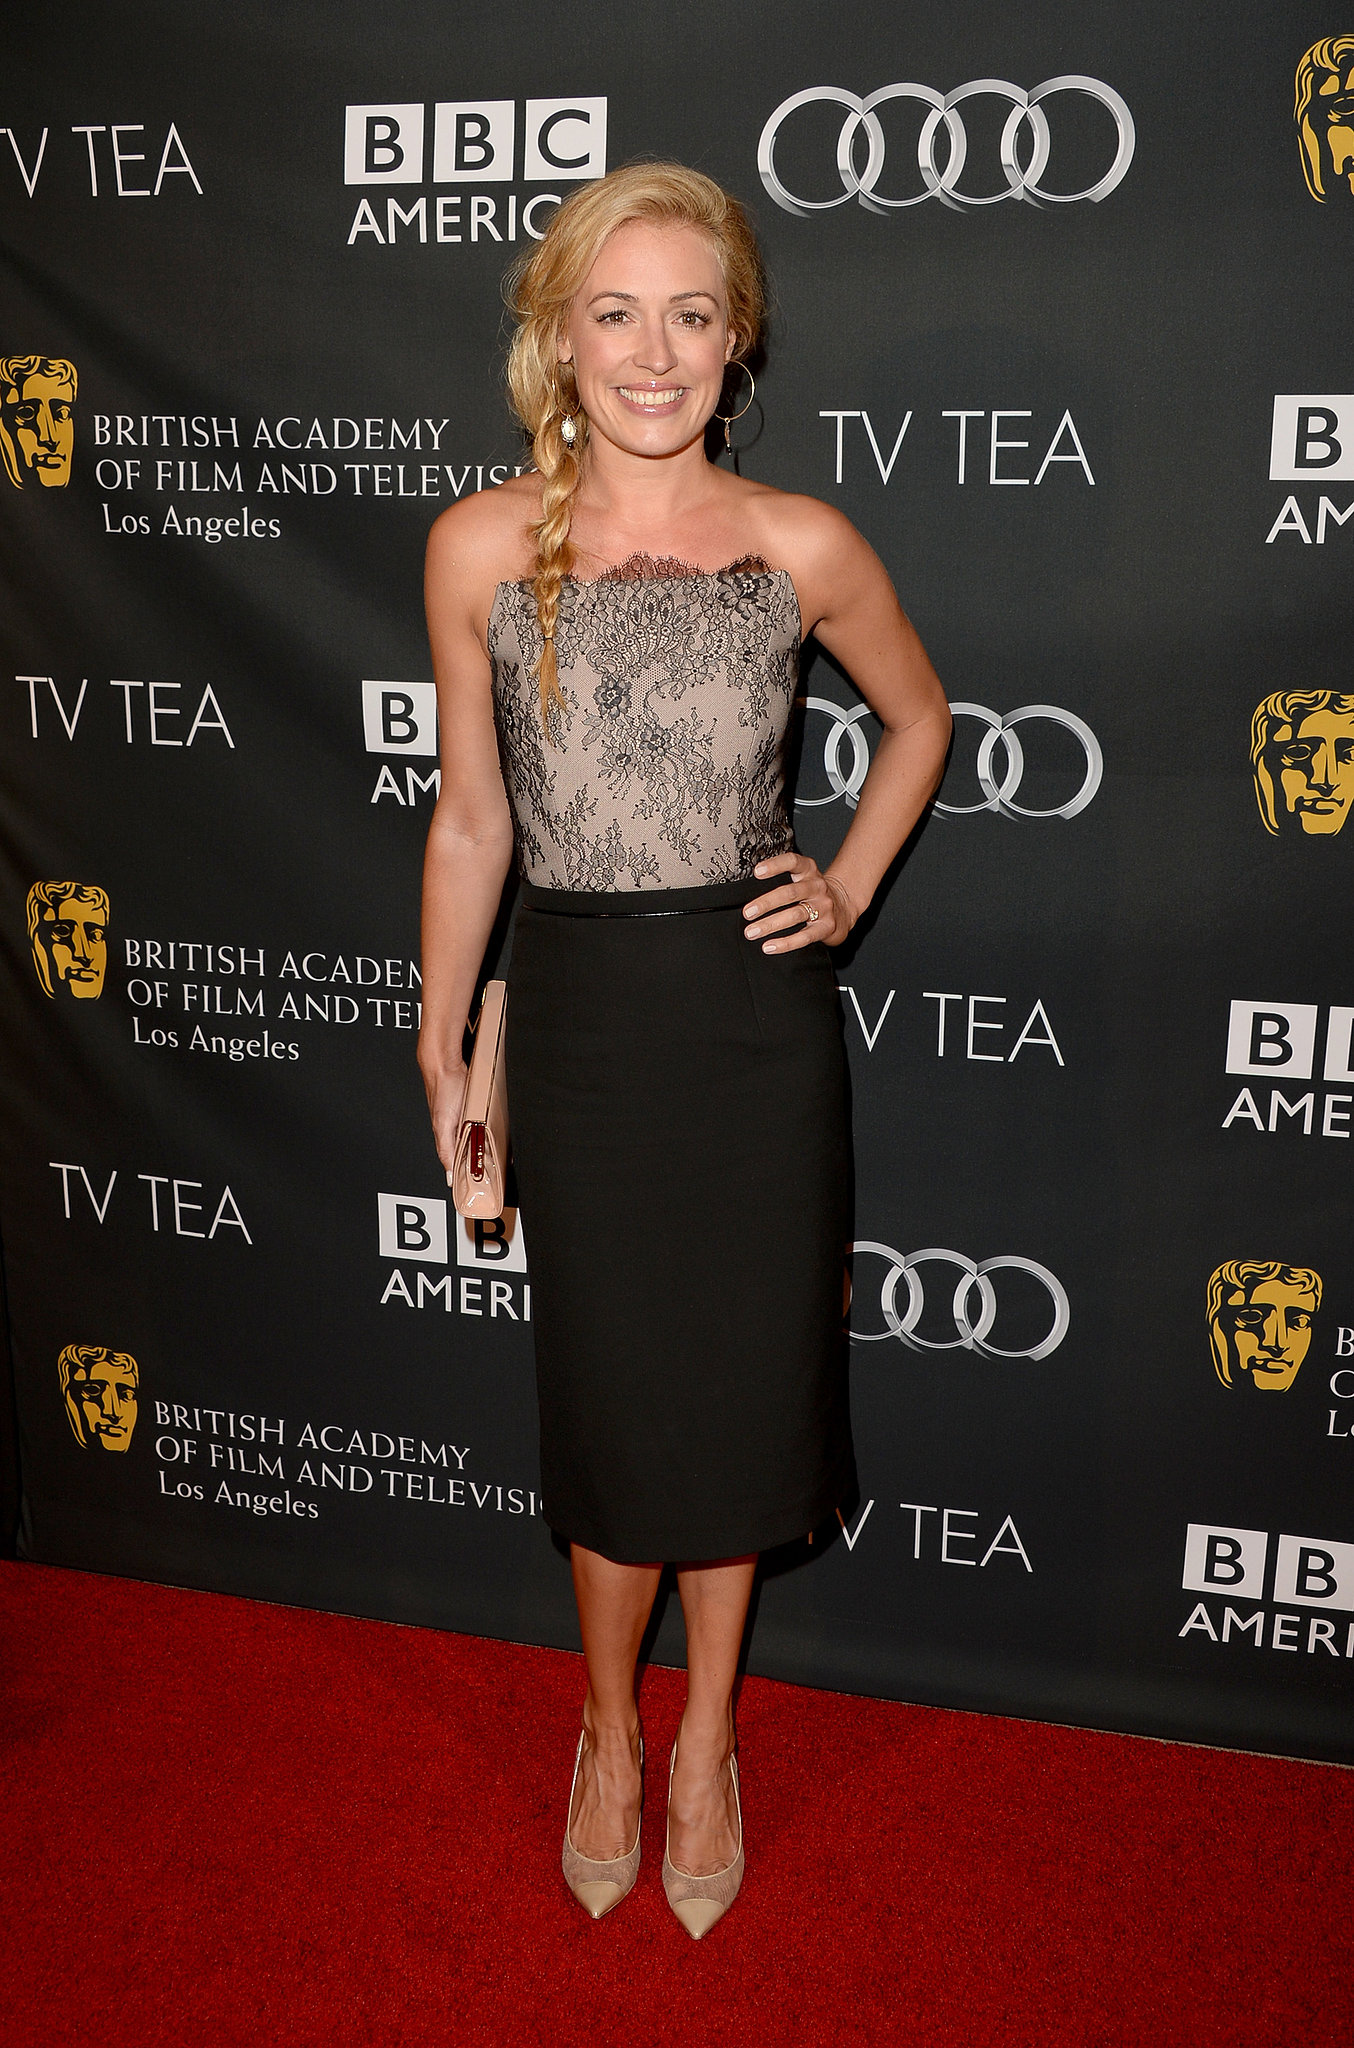 At the BAFTA LA TV Tea Party in Beverly Hills,